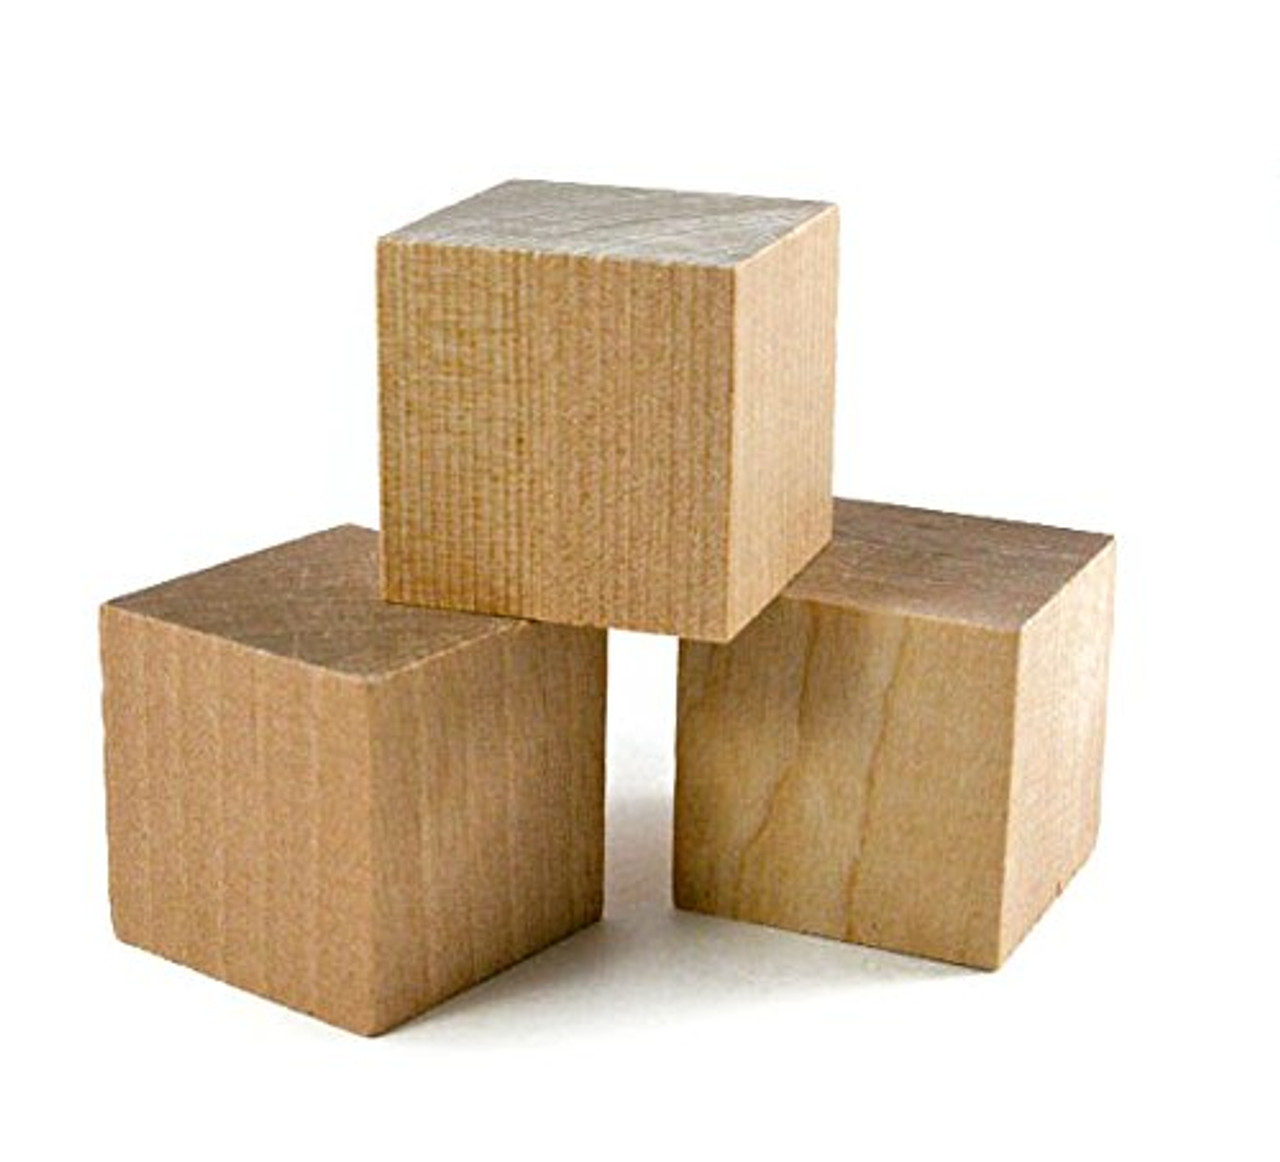 "1"" Wooden Cubes (40 pcs) - Wooden Blocks"